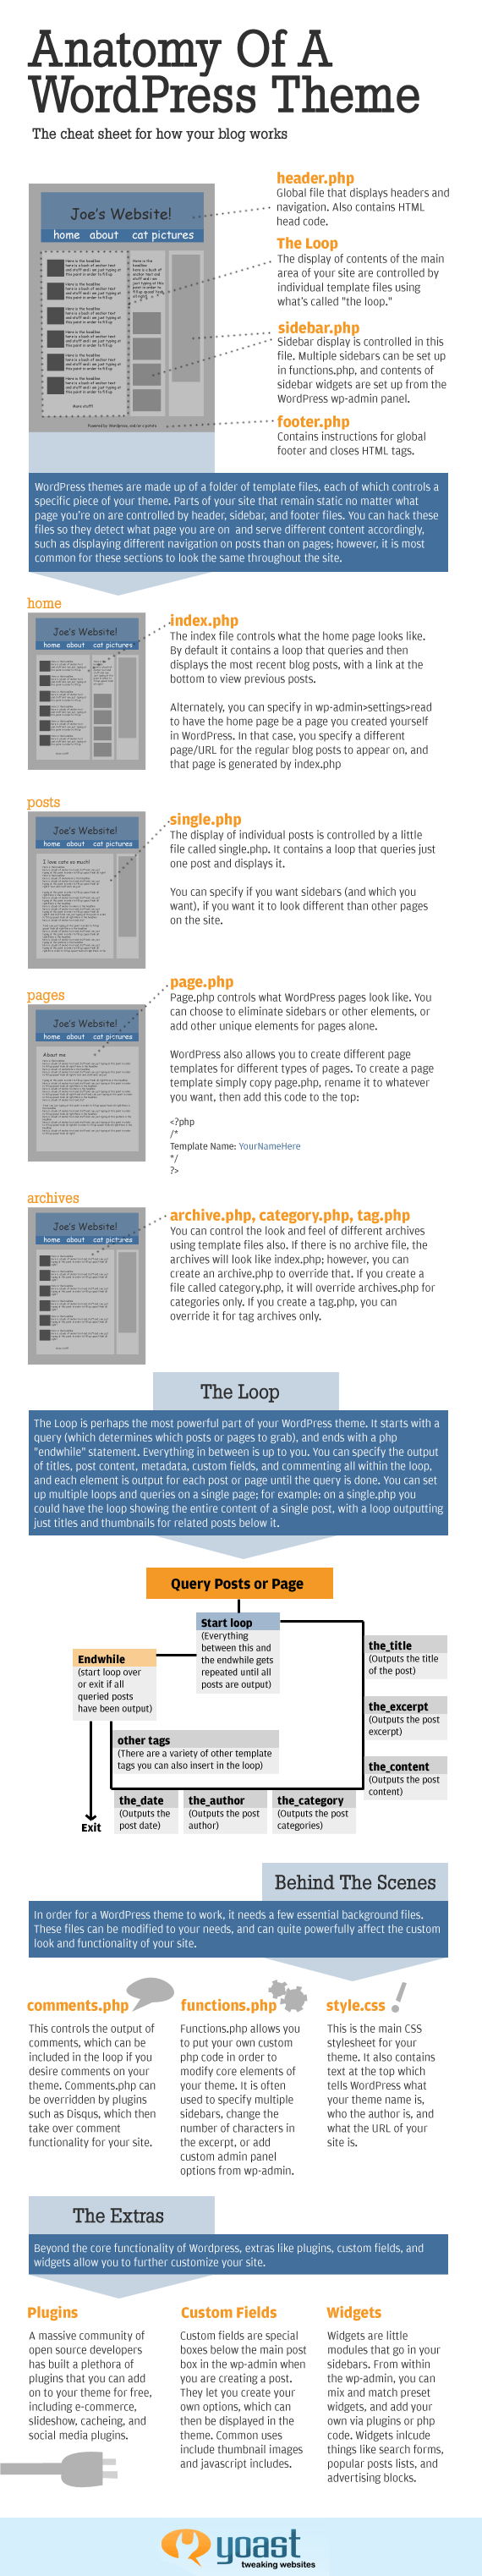 anatomie-theme-blog-wordpress